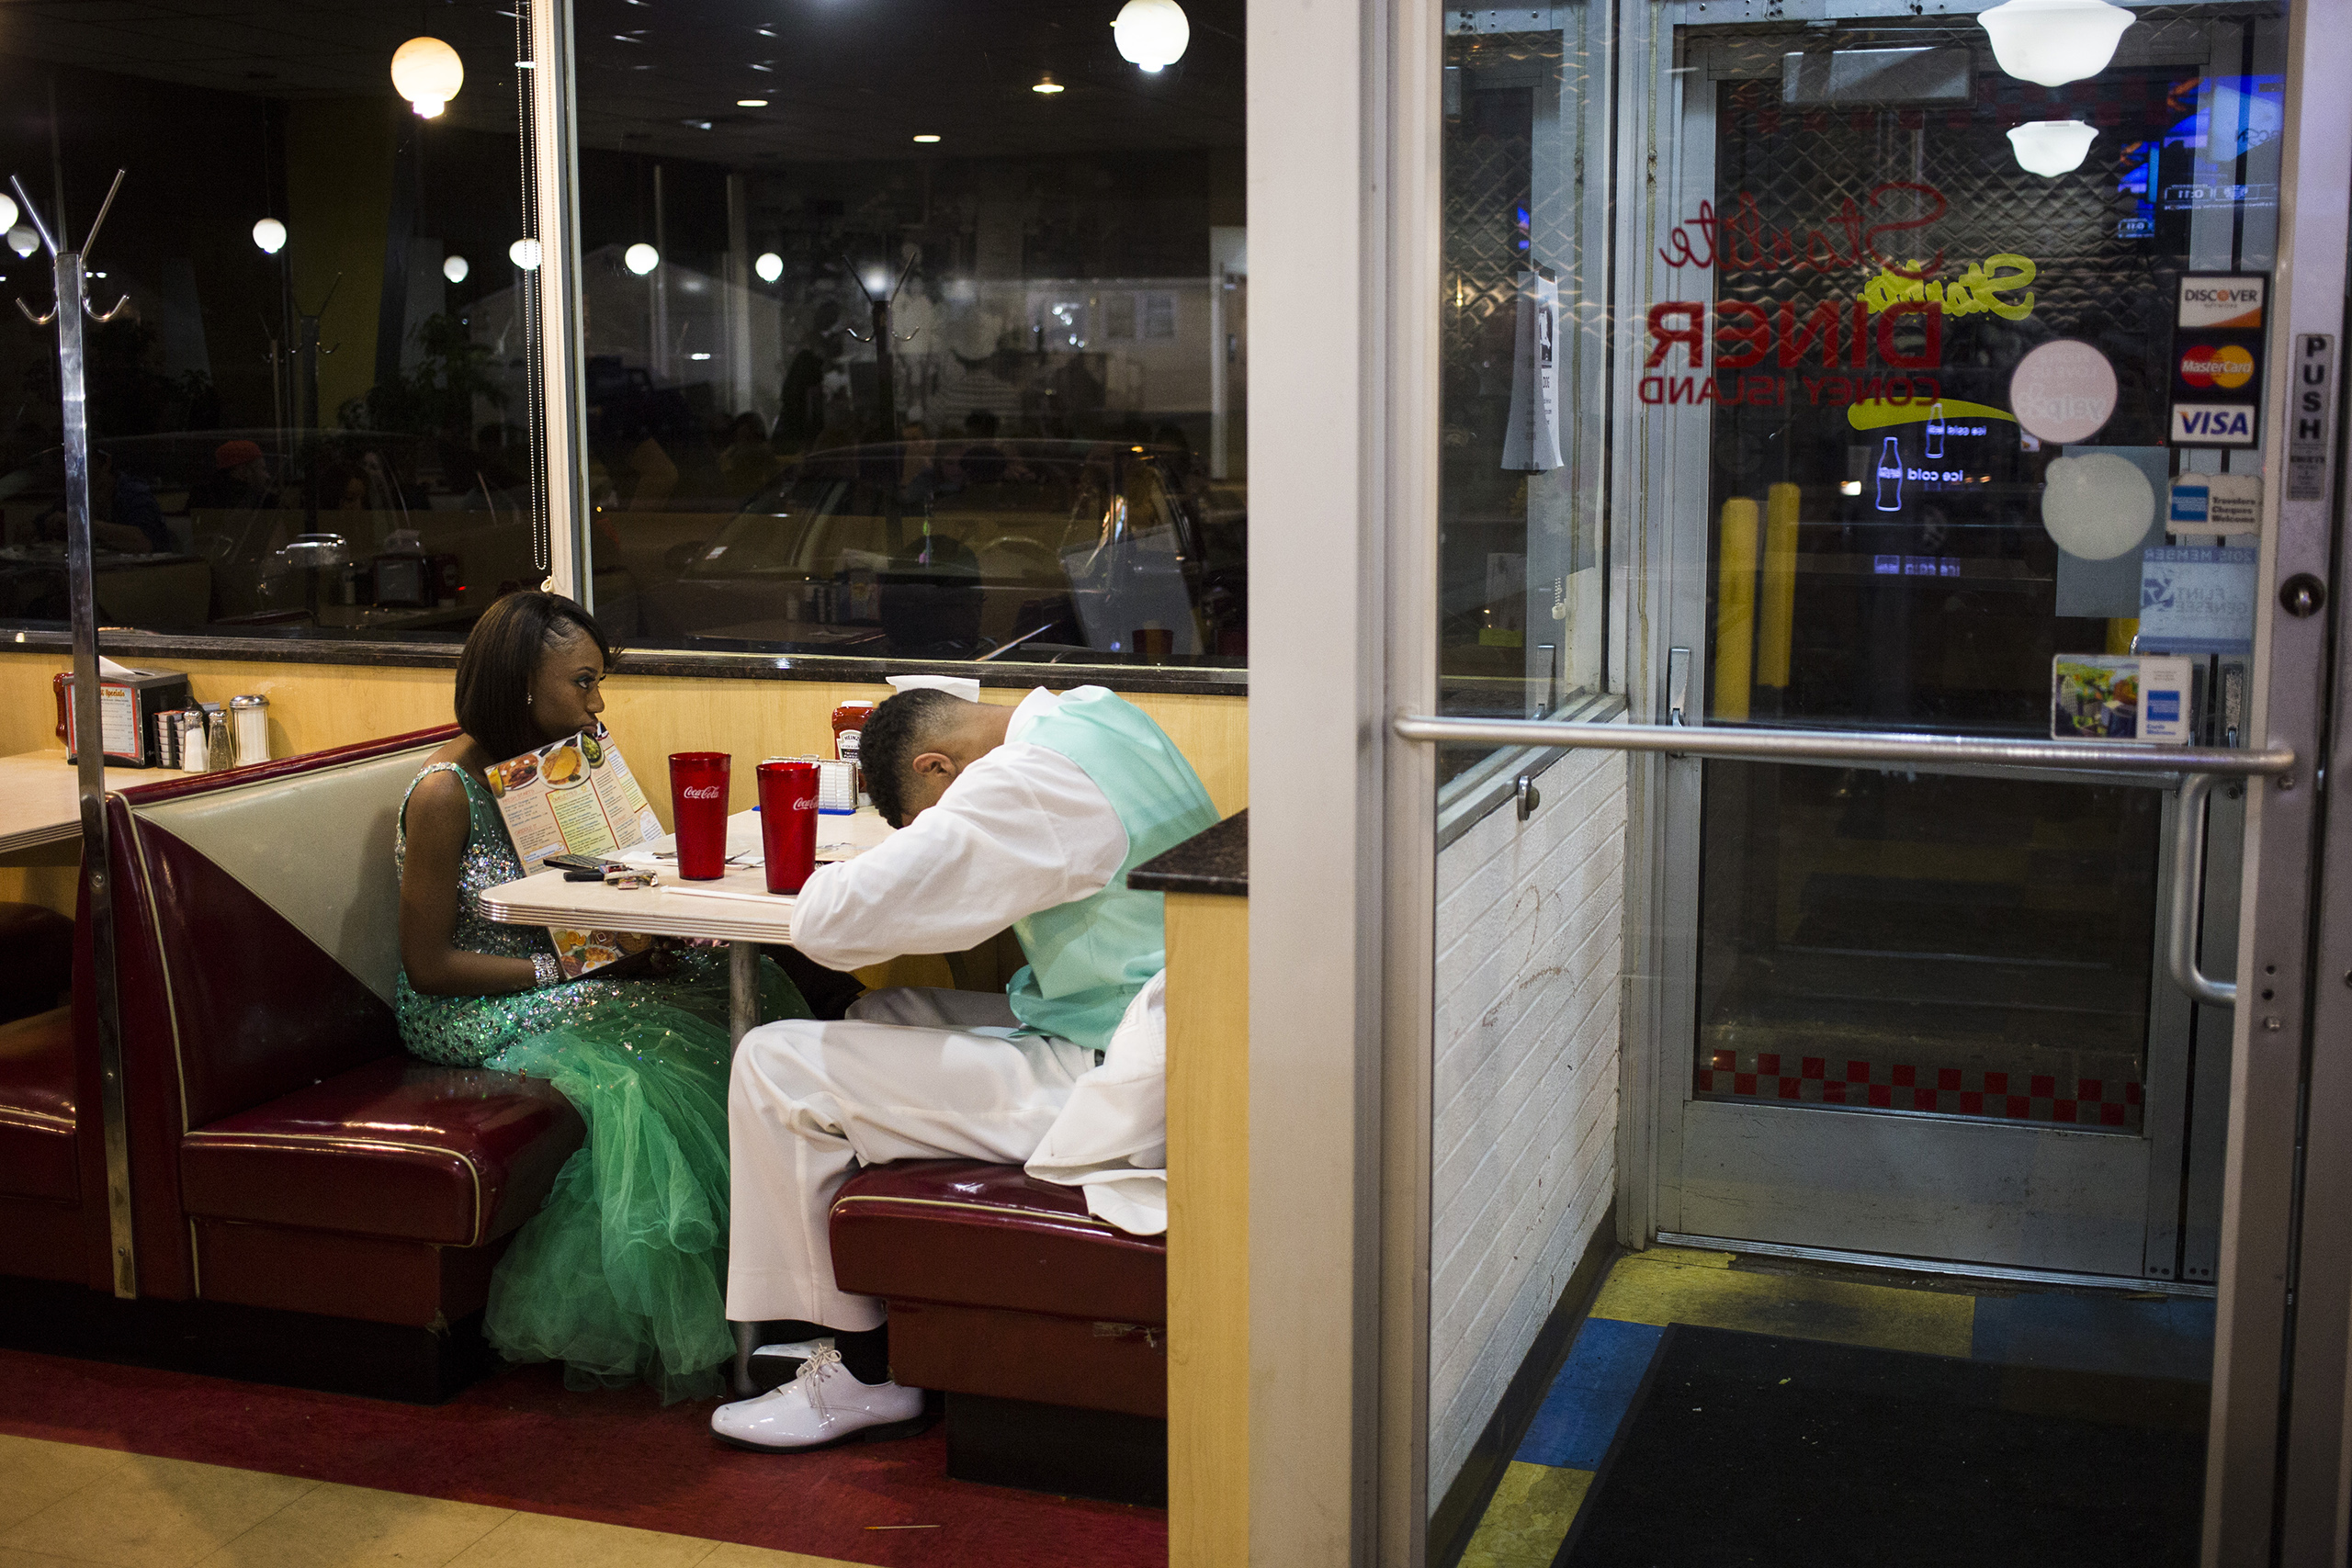 Northwestern High School senior Daryl Jones rests his head at the Starlite Diner & Coney Island while waiting for food with his date, Destiny Clements, following prom, May 2015.